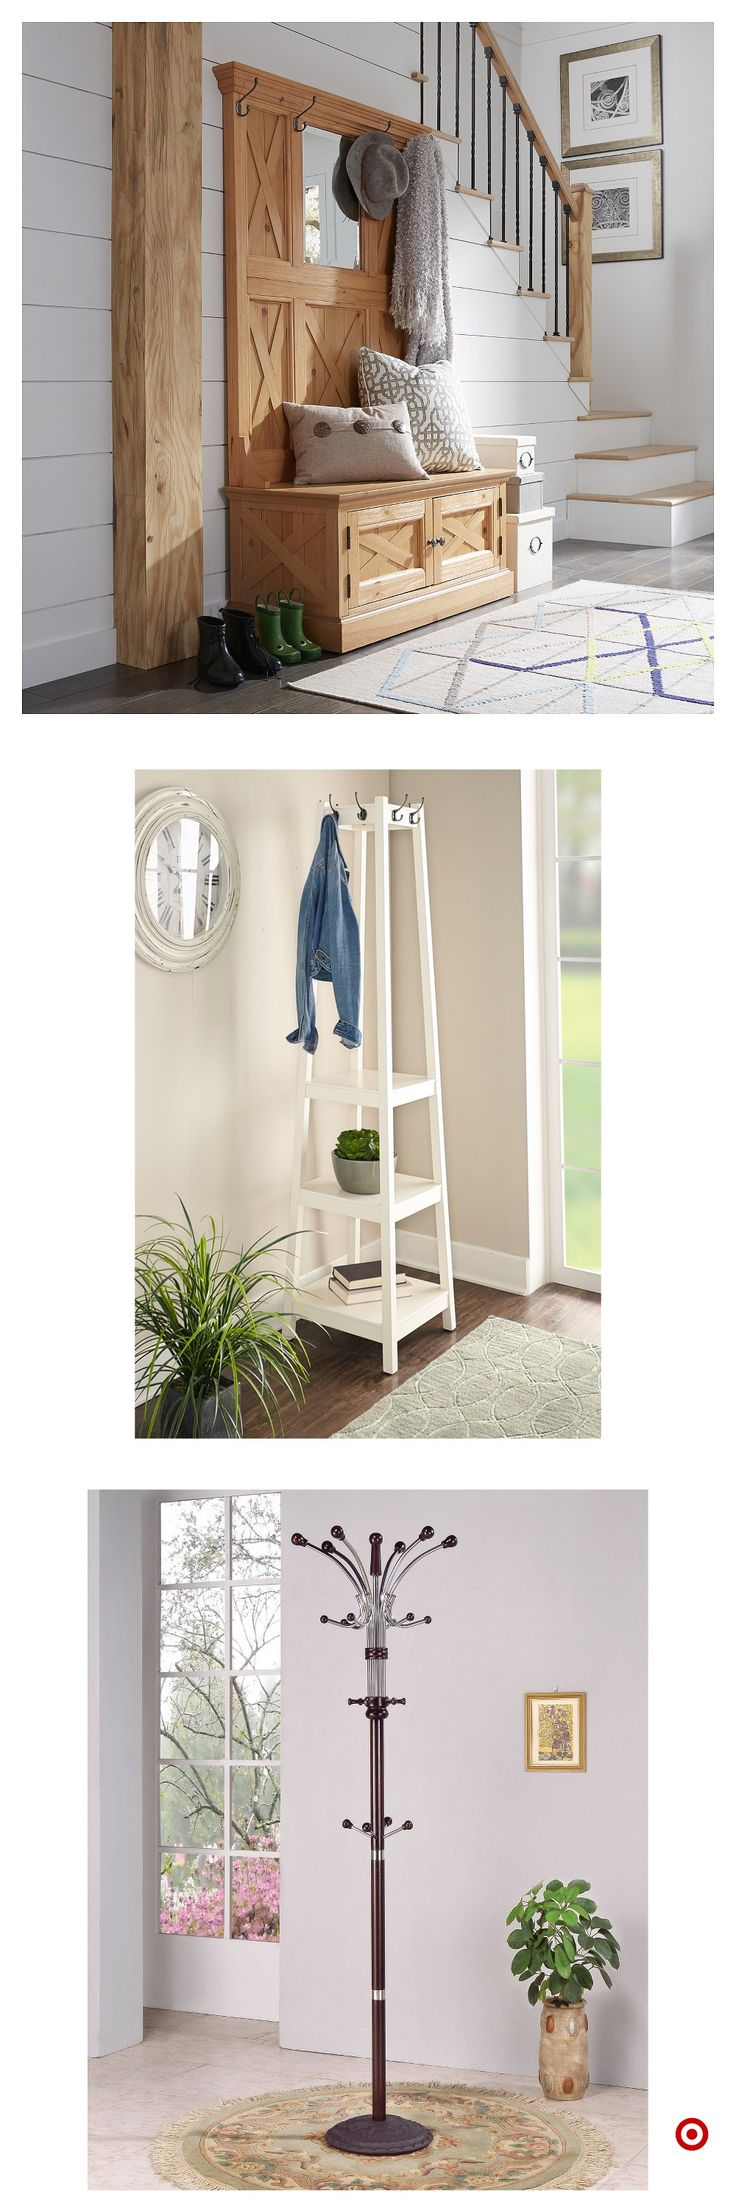 Shop Target for freestanding coat rack you will love at great low prices. Free shipping on orders of $35+ or free same-day pick-up in store.